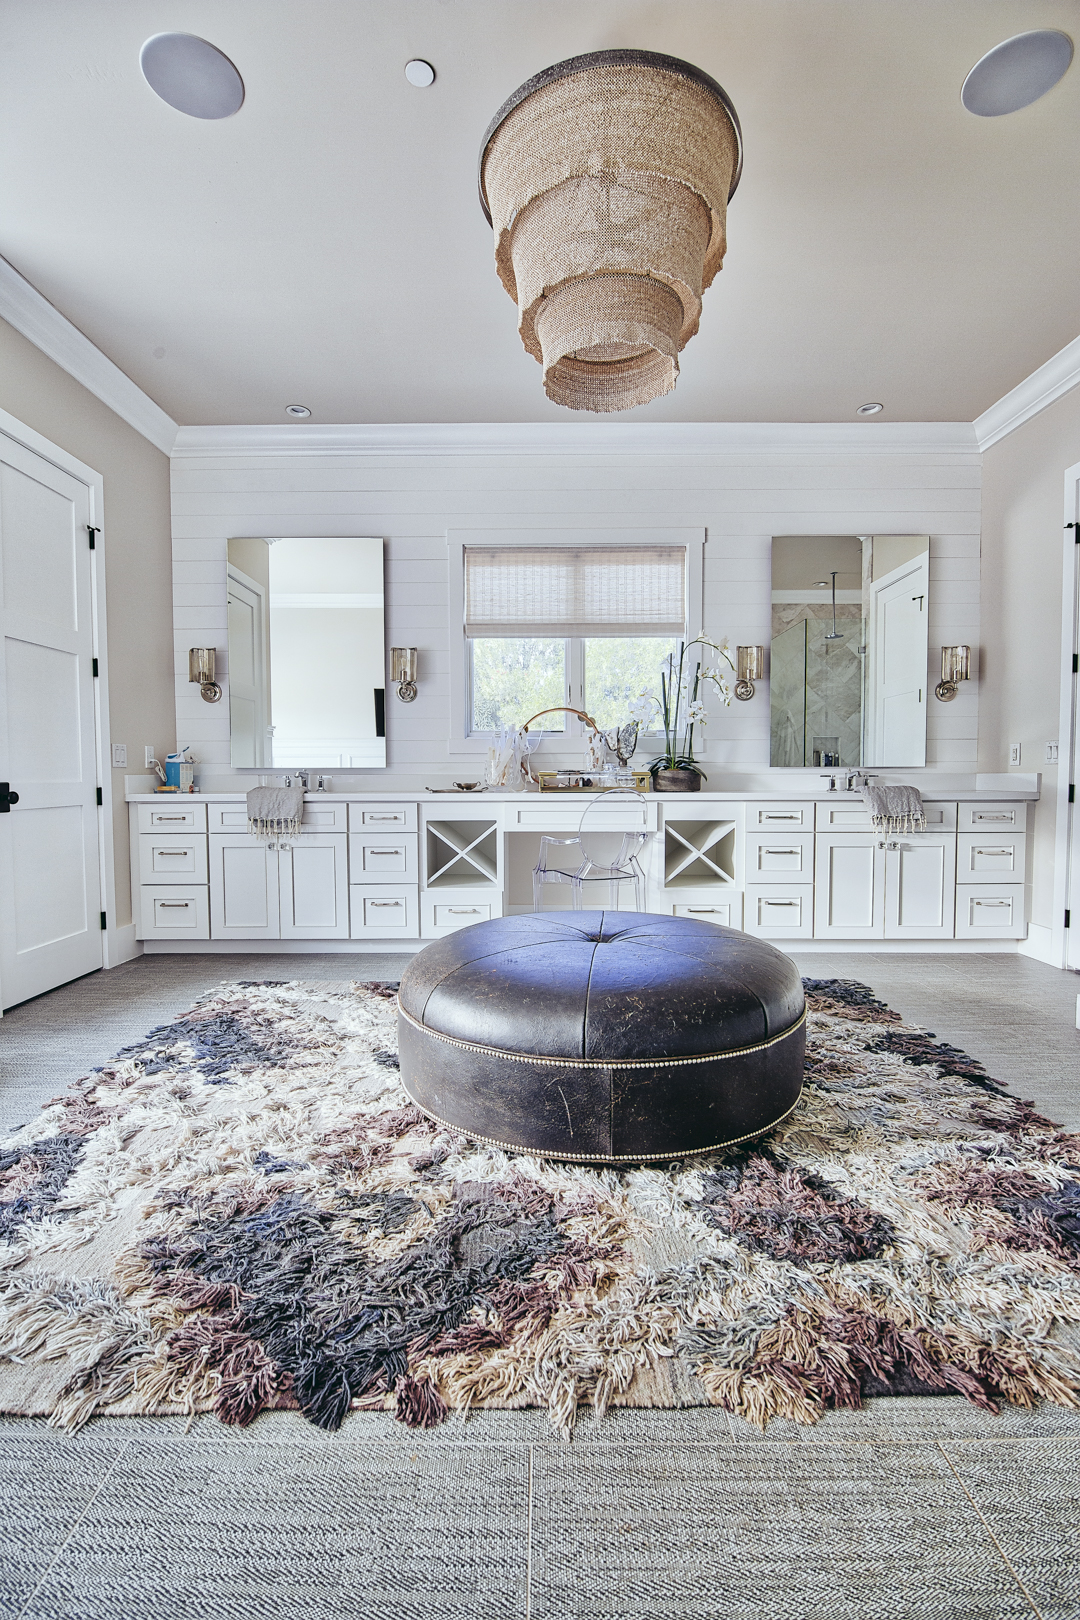 Bungalow Furniture & Accessories - Scottsdale, AZ - Master Bathroom